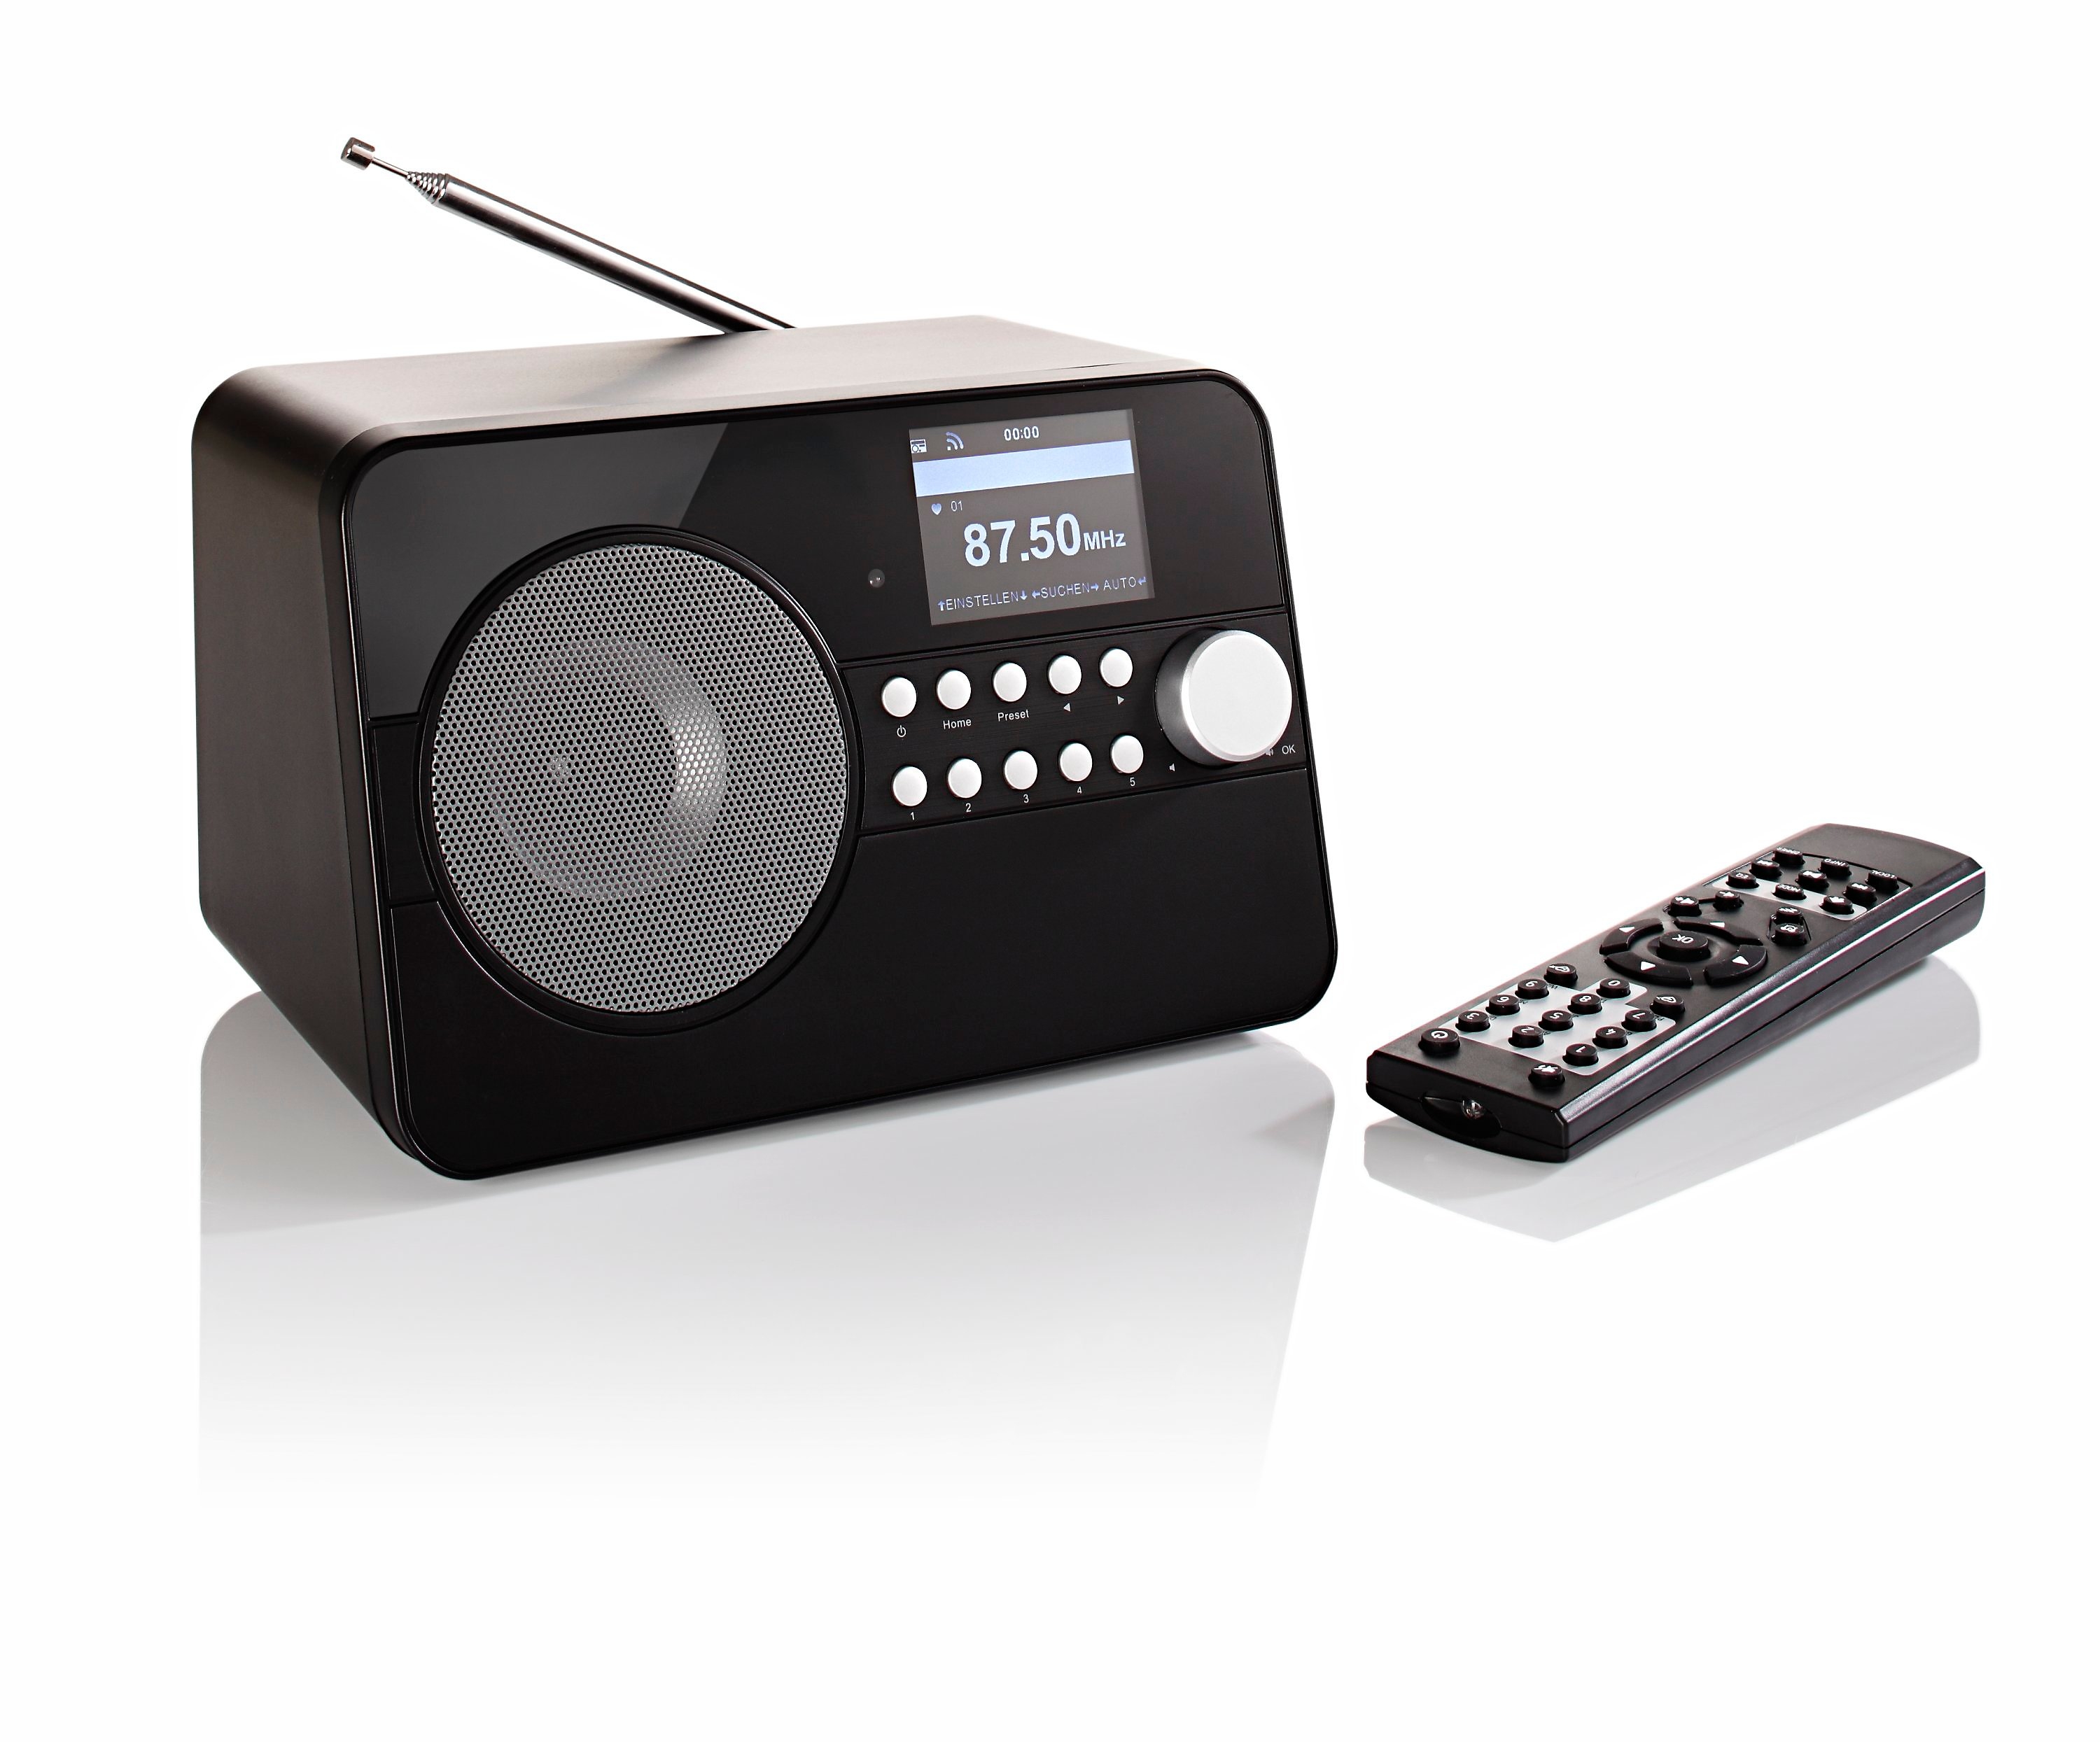 elta radio mit bewegungsmelder dab radio kaufen top. Black Bedroom Furniture Sets. Home Design Ideas